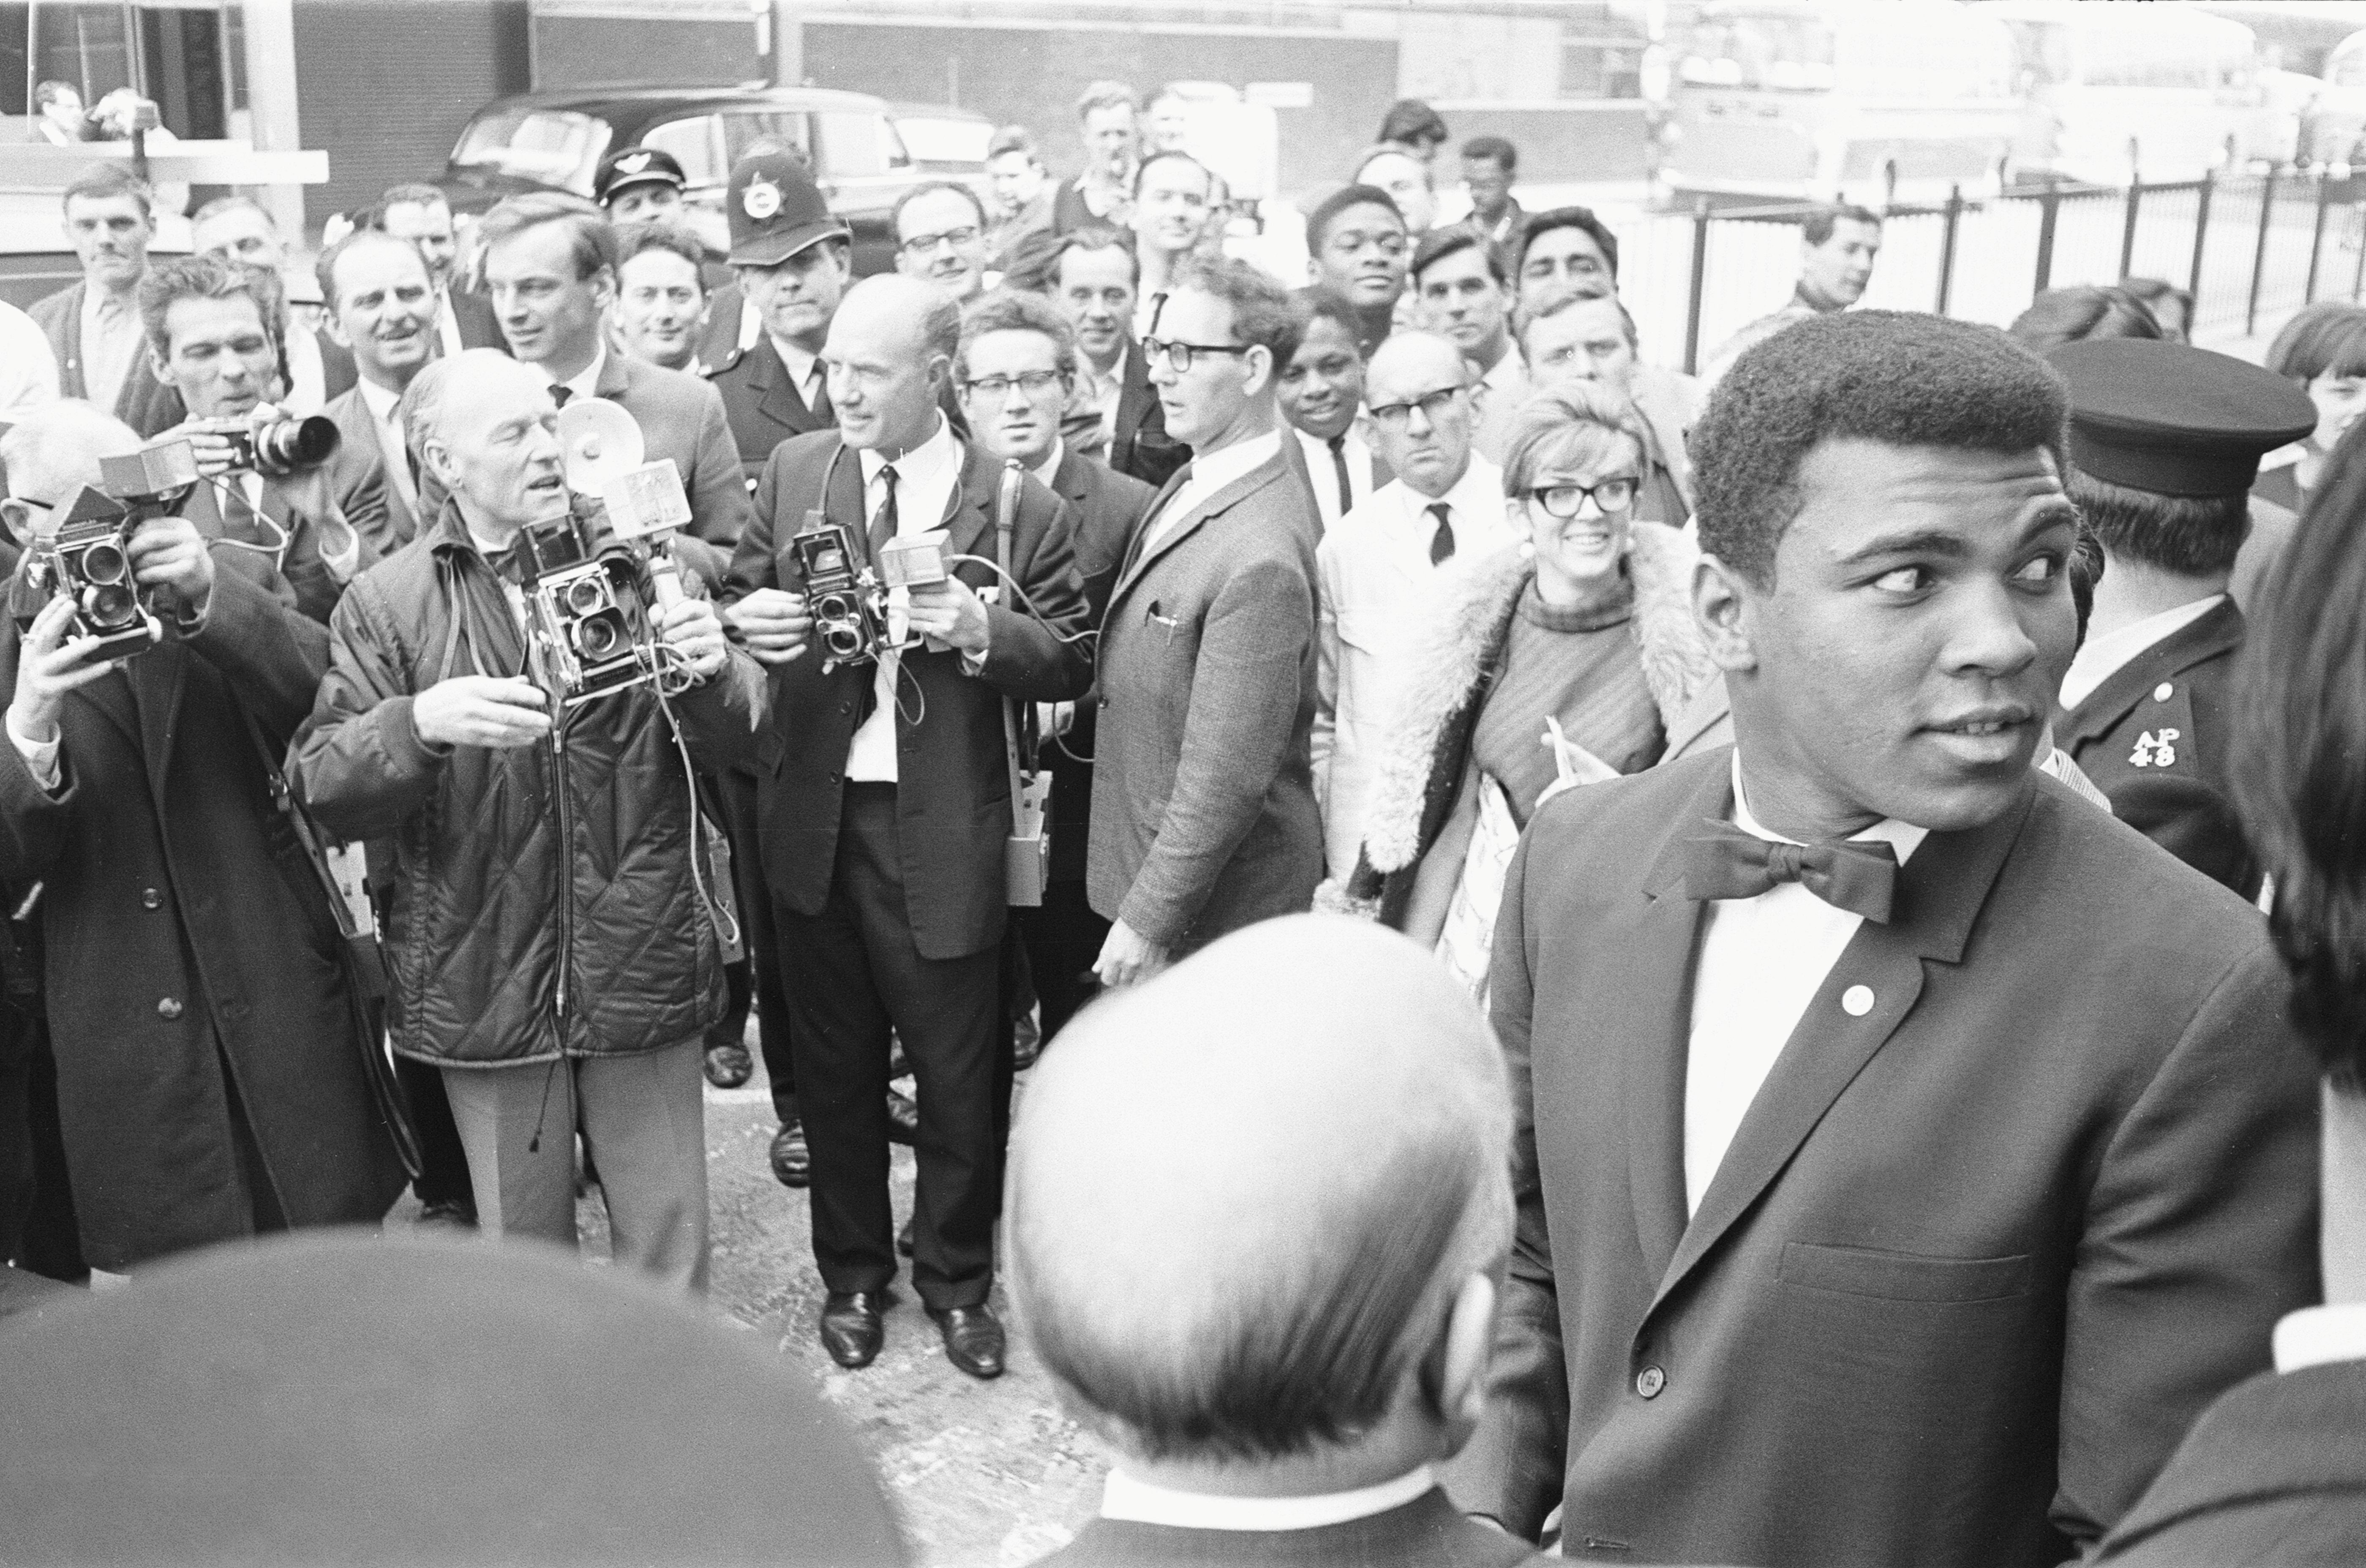 Muhammad Ali, formerly Cassius Clay, is pictured at his West End Hotel in London before his fight with British heavyweight Henry Cooper on May 9. 1966. File photo by Action Images/MSI via Reuters